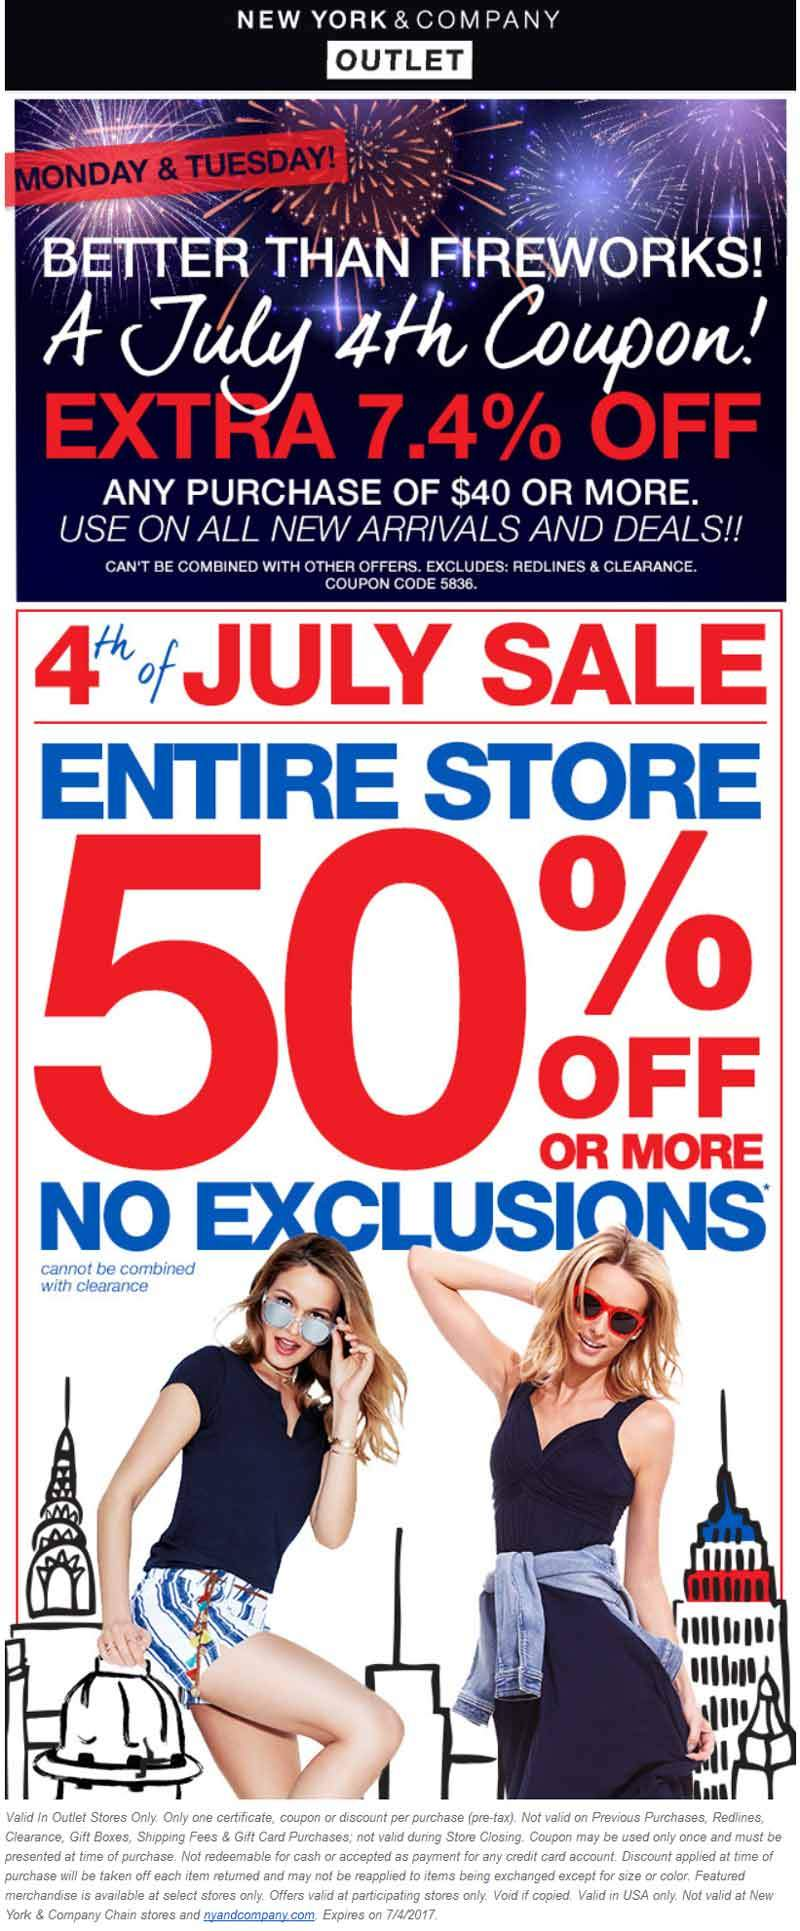 New York & Company Coupon August 2018 Everything is 50% off & more at New York & Company Outlet locations